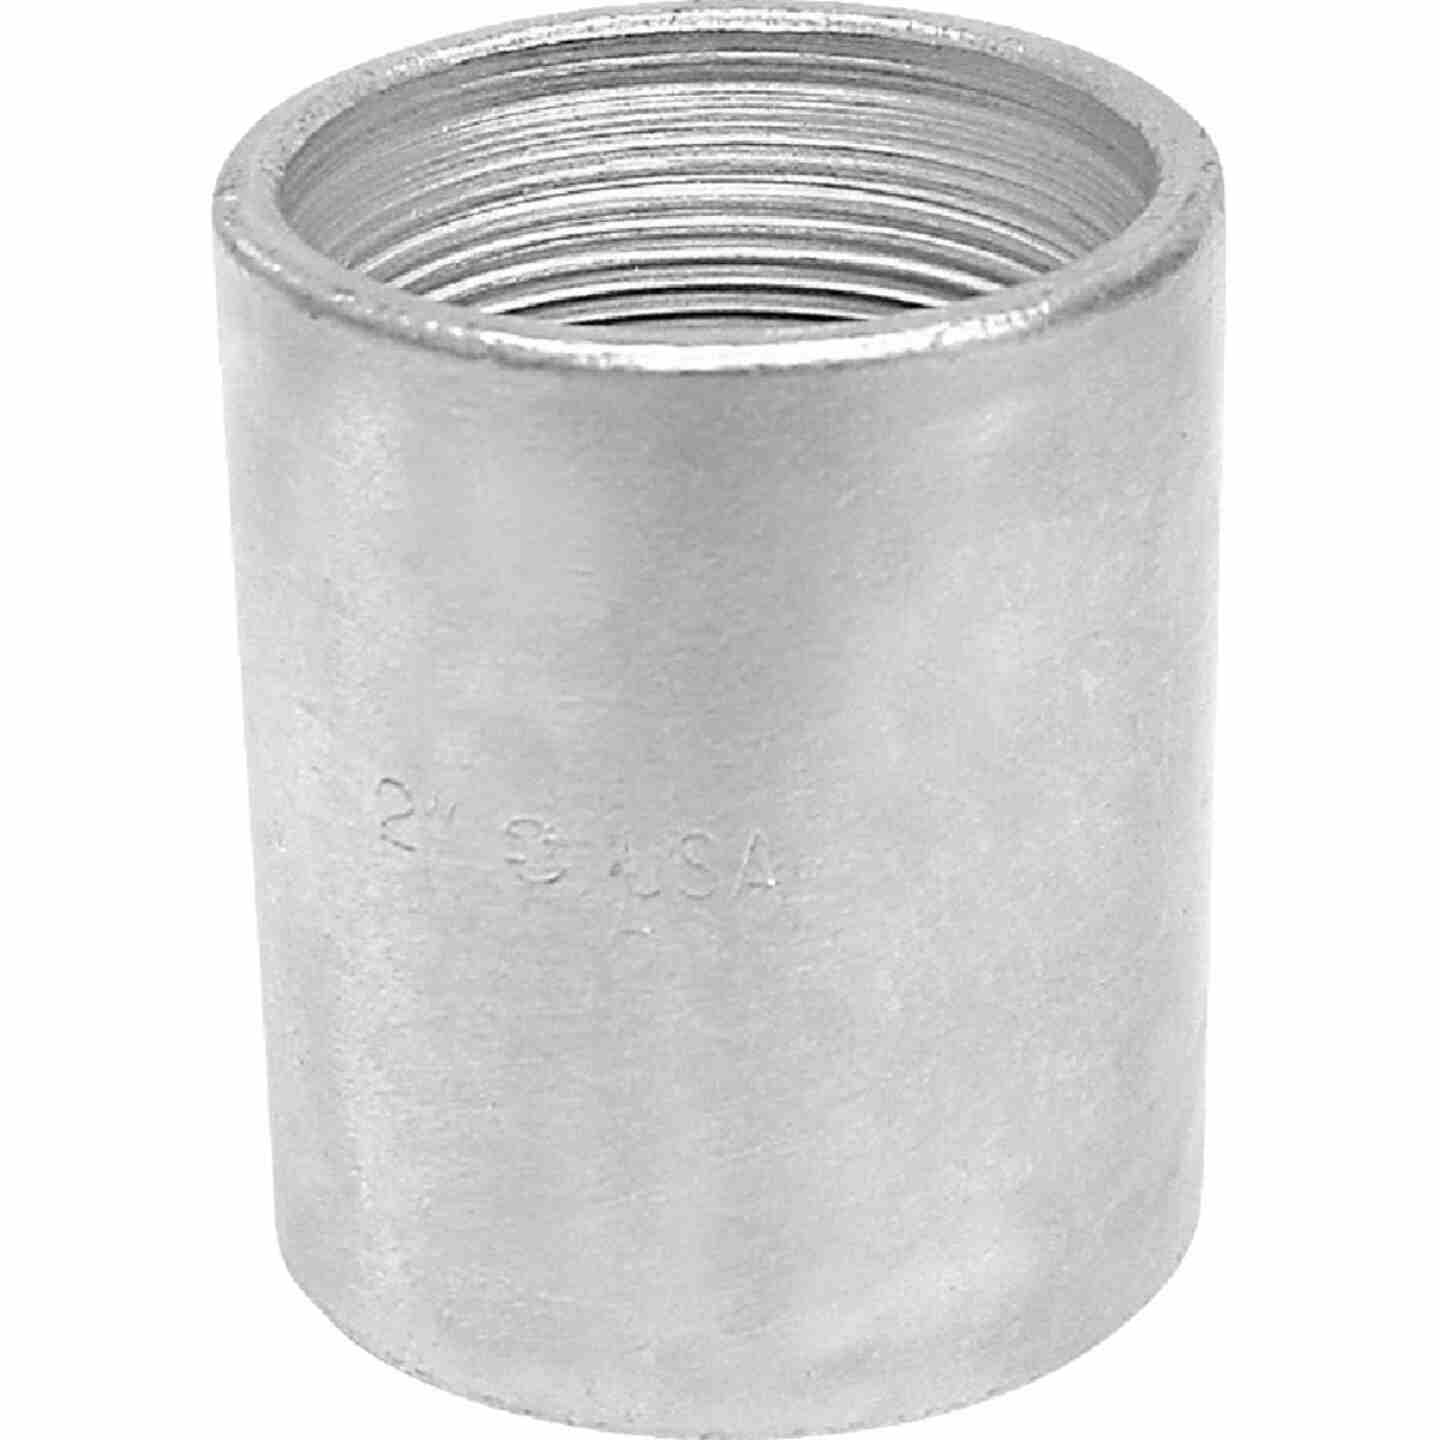 Anvil 1/2 In. x 1/2 In. FPT Standard Merchant Galvanized Coupling Image 1